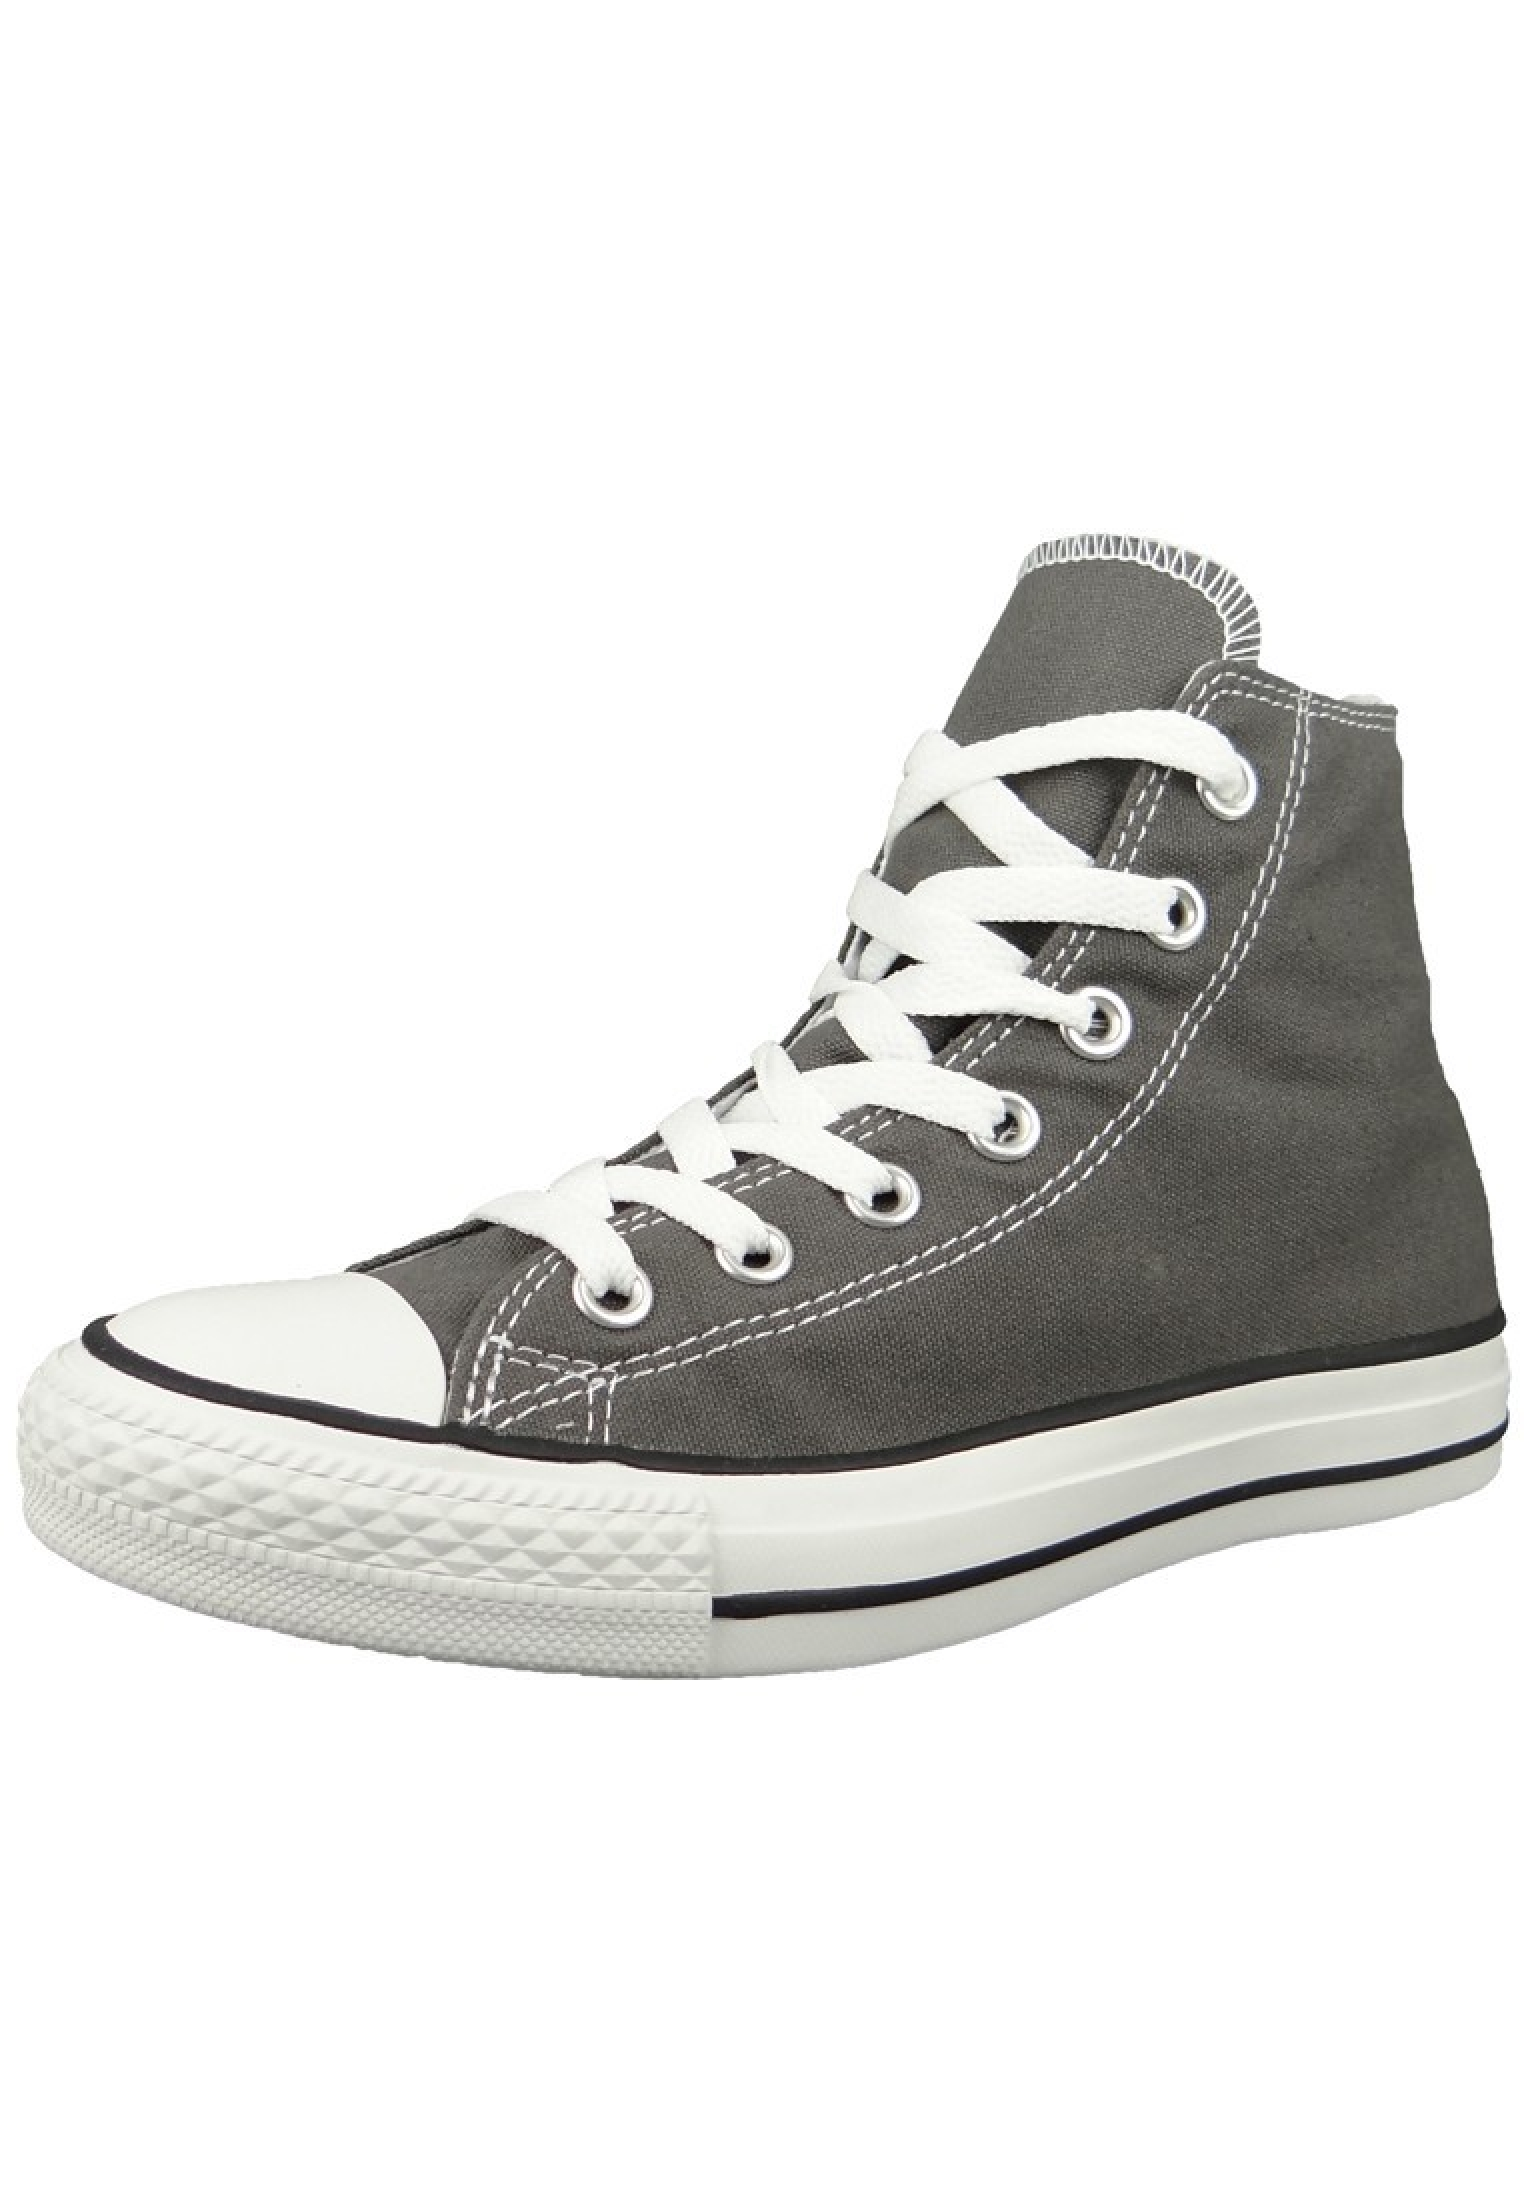 b9cdc65aa3b56 Converse Chucks 1J793 Charcoal Grau Chuck Taylor All Star HI ...